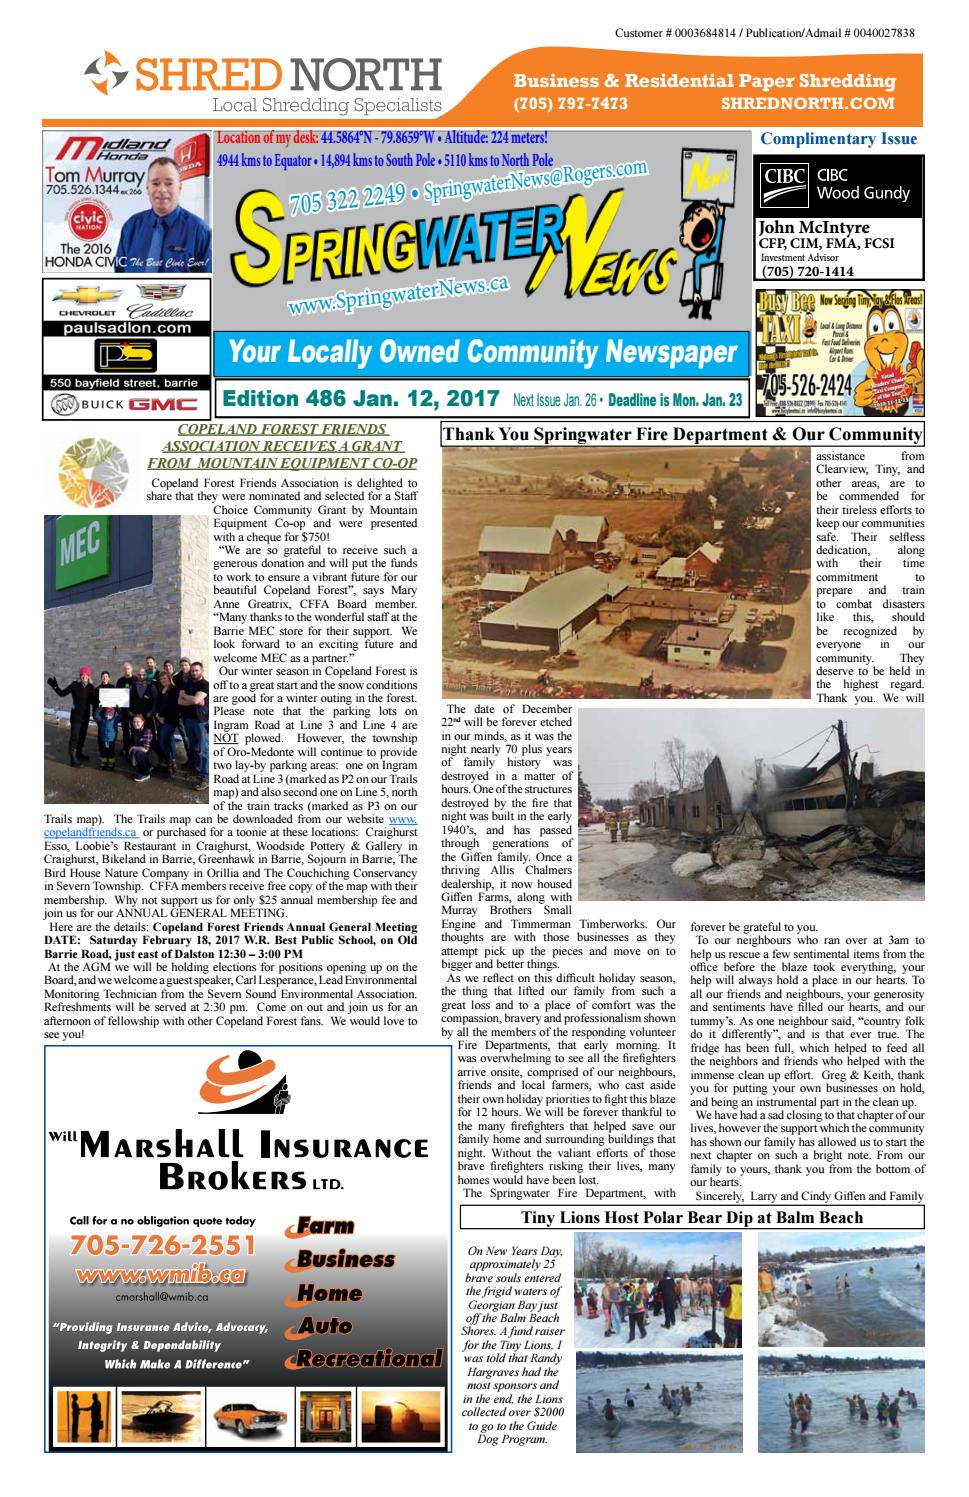 January 12 2017 edition 486 for web by Springwater News - issuu